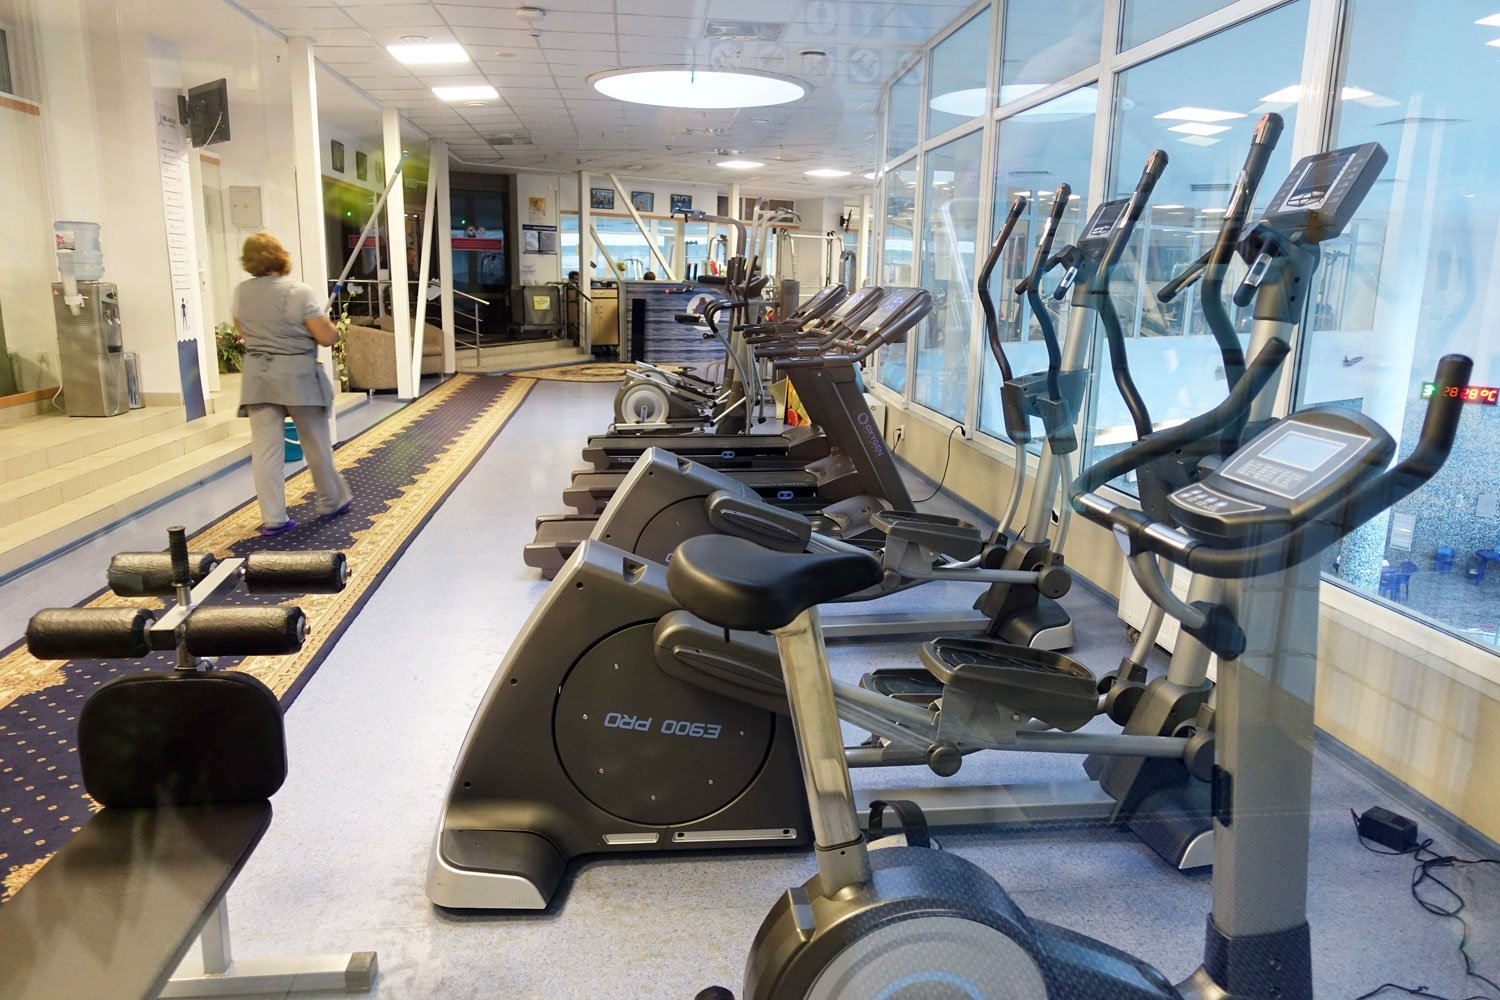 hotel belarus gym with 2 elipticals, an exercise bike, several treadmills, and weights. Good quality equipment.